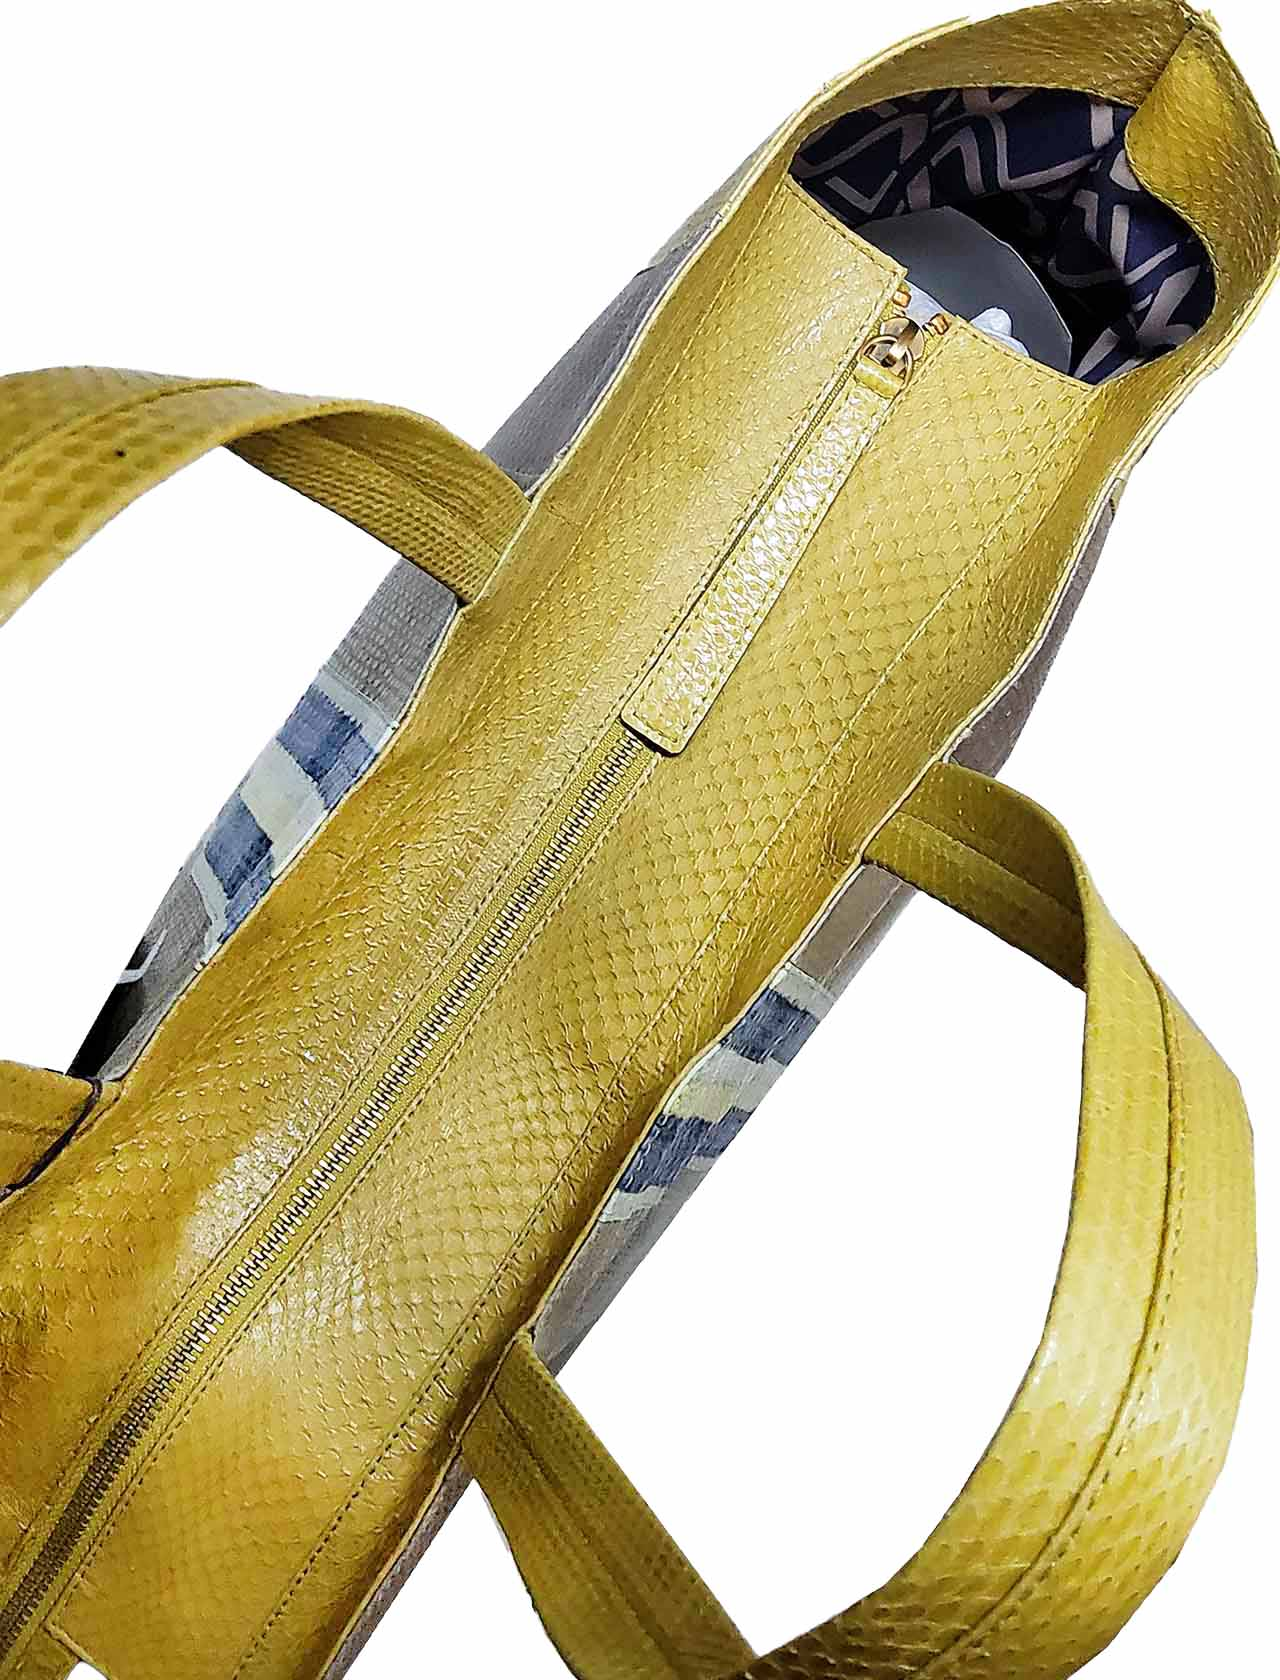 Large Woman Shopping Bag Exotic Stripes in Blue Wips and Multicolored Cedar Green with Shoulder Handles in the Same Color Maliparmi | Bags and backpacks | BH02620142480B99